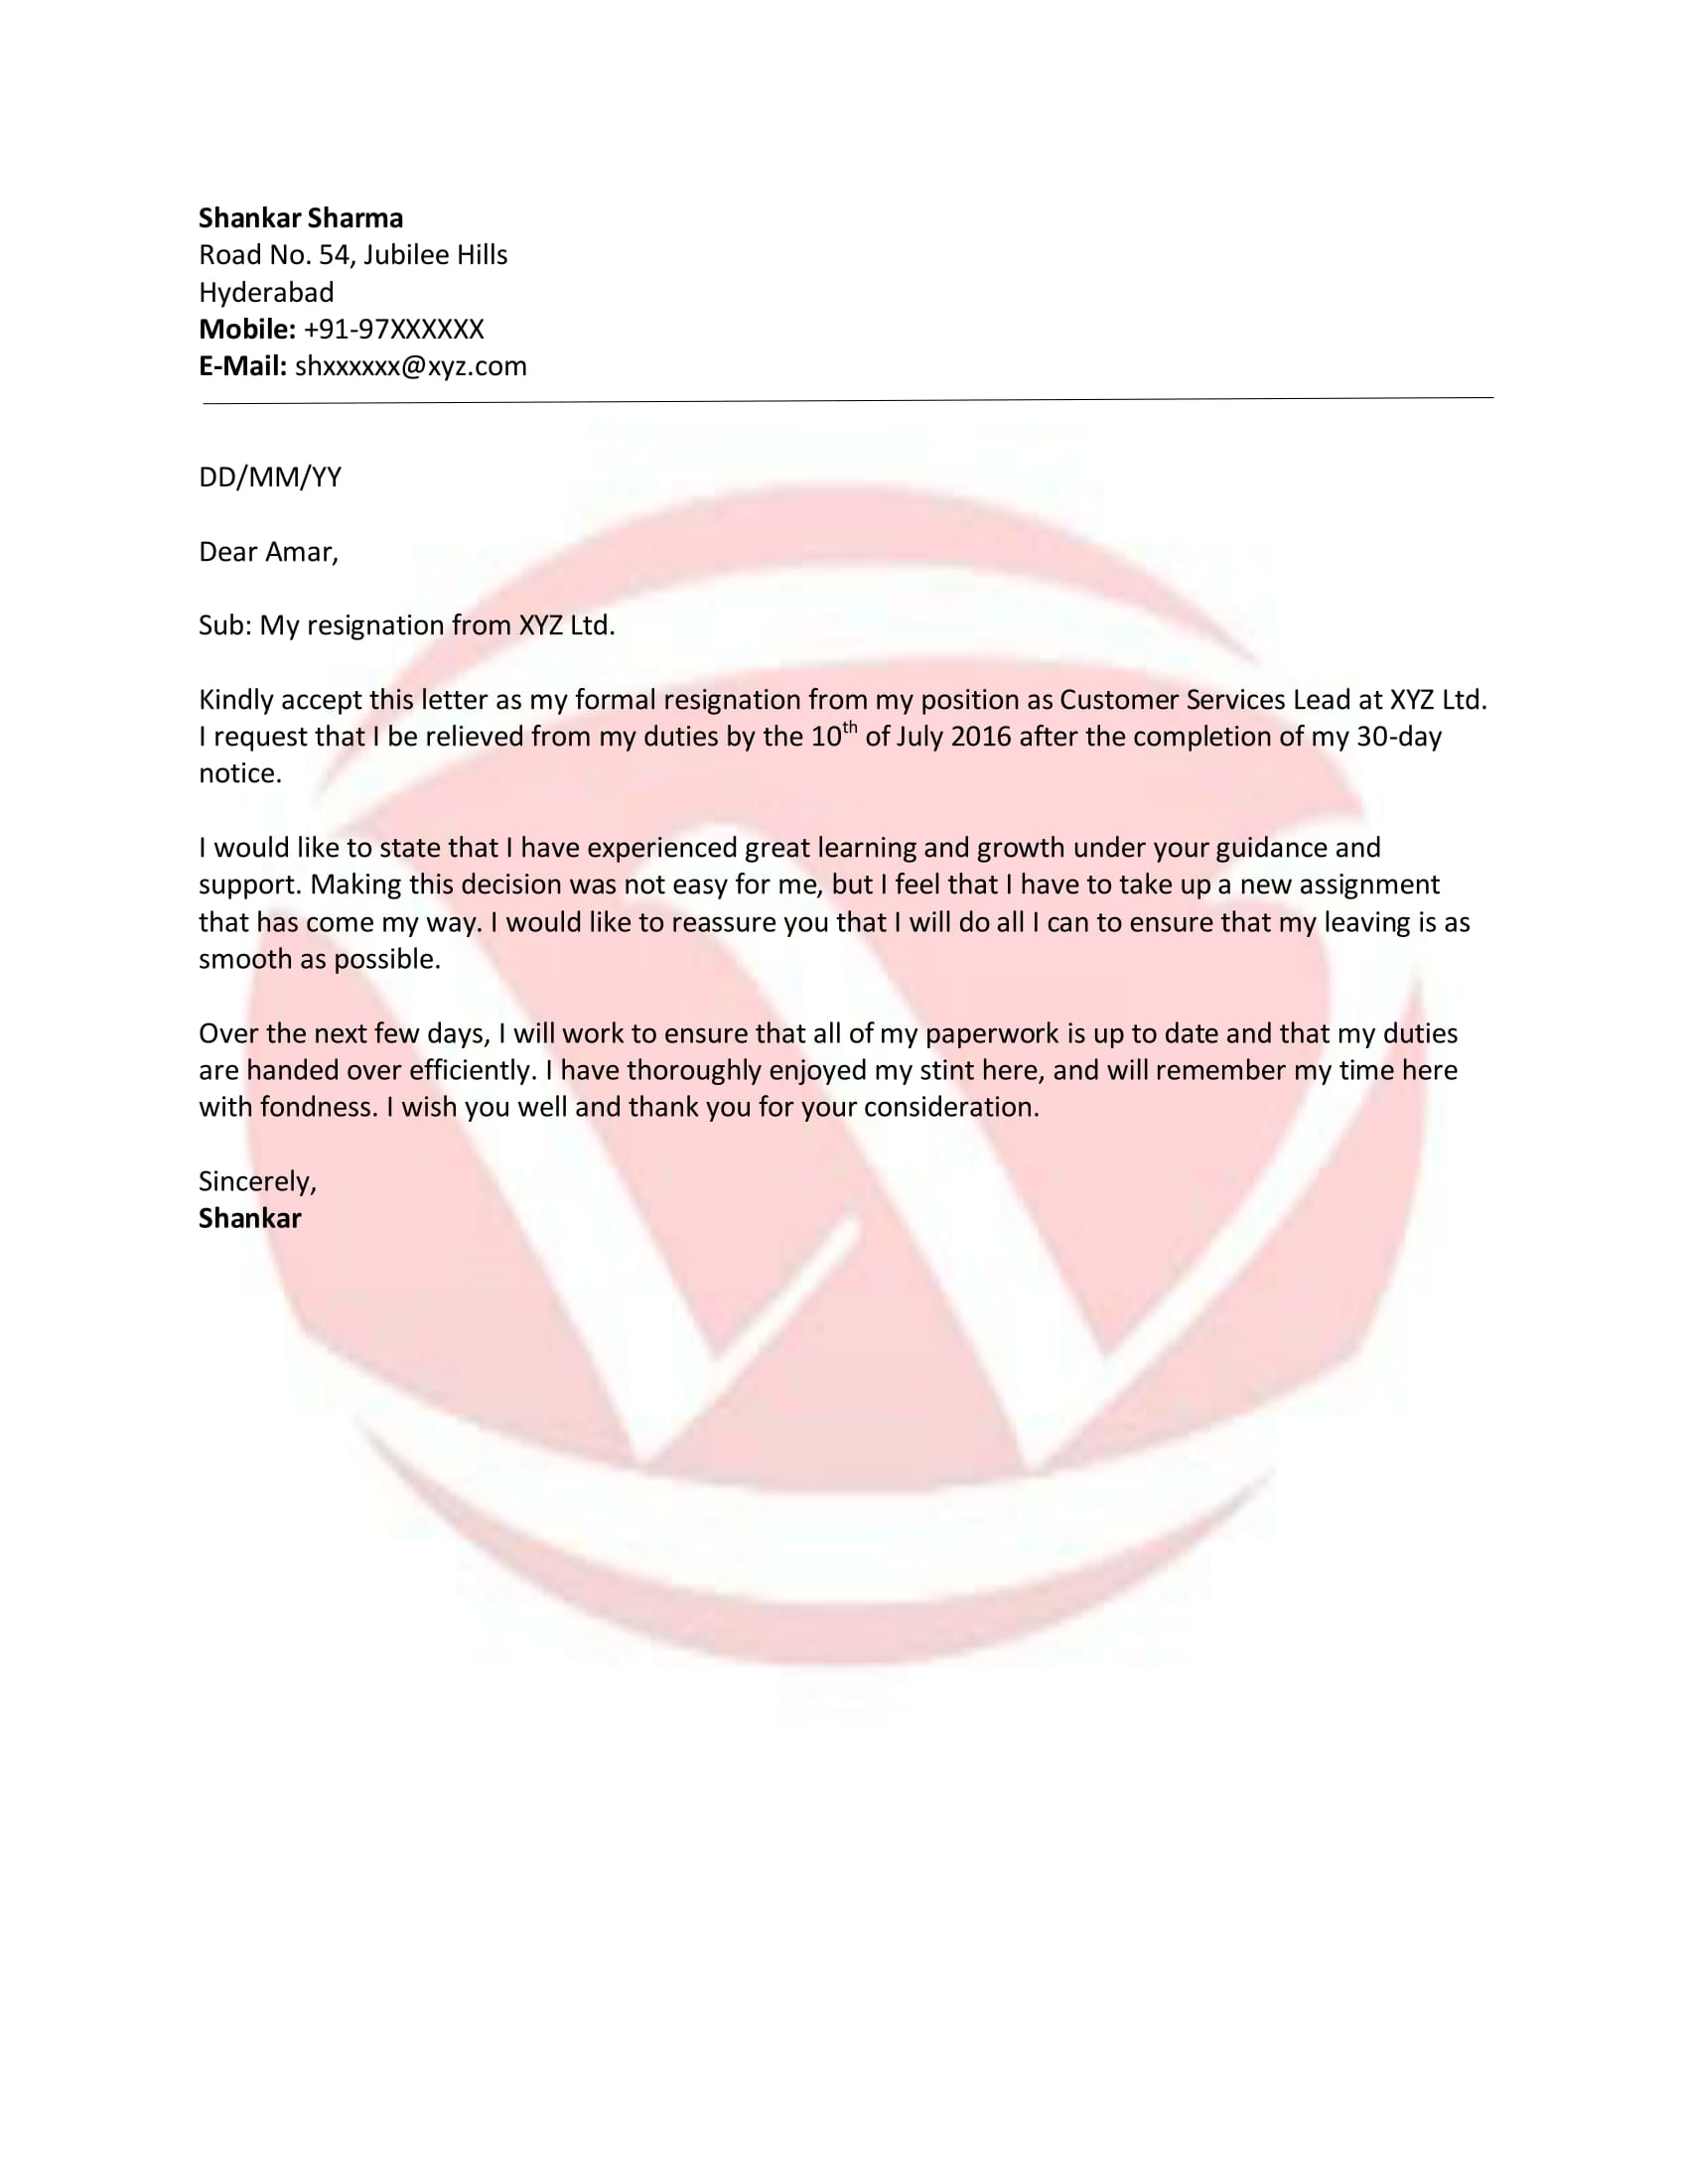 Resignation Sample Letter Format, Download Letter Format Templates